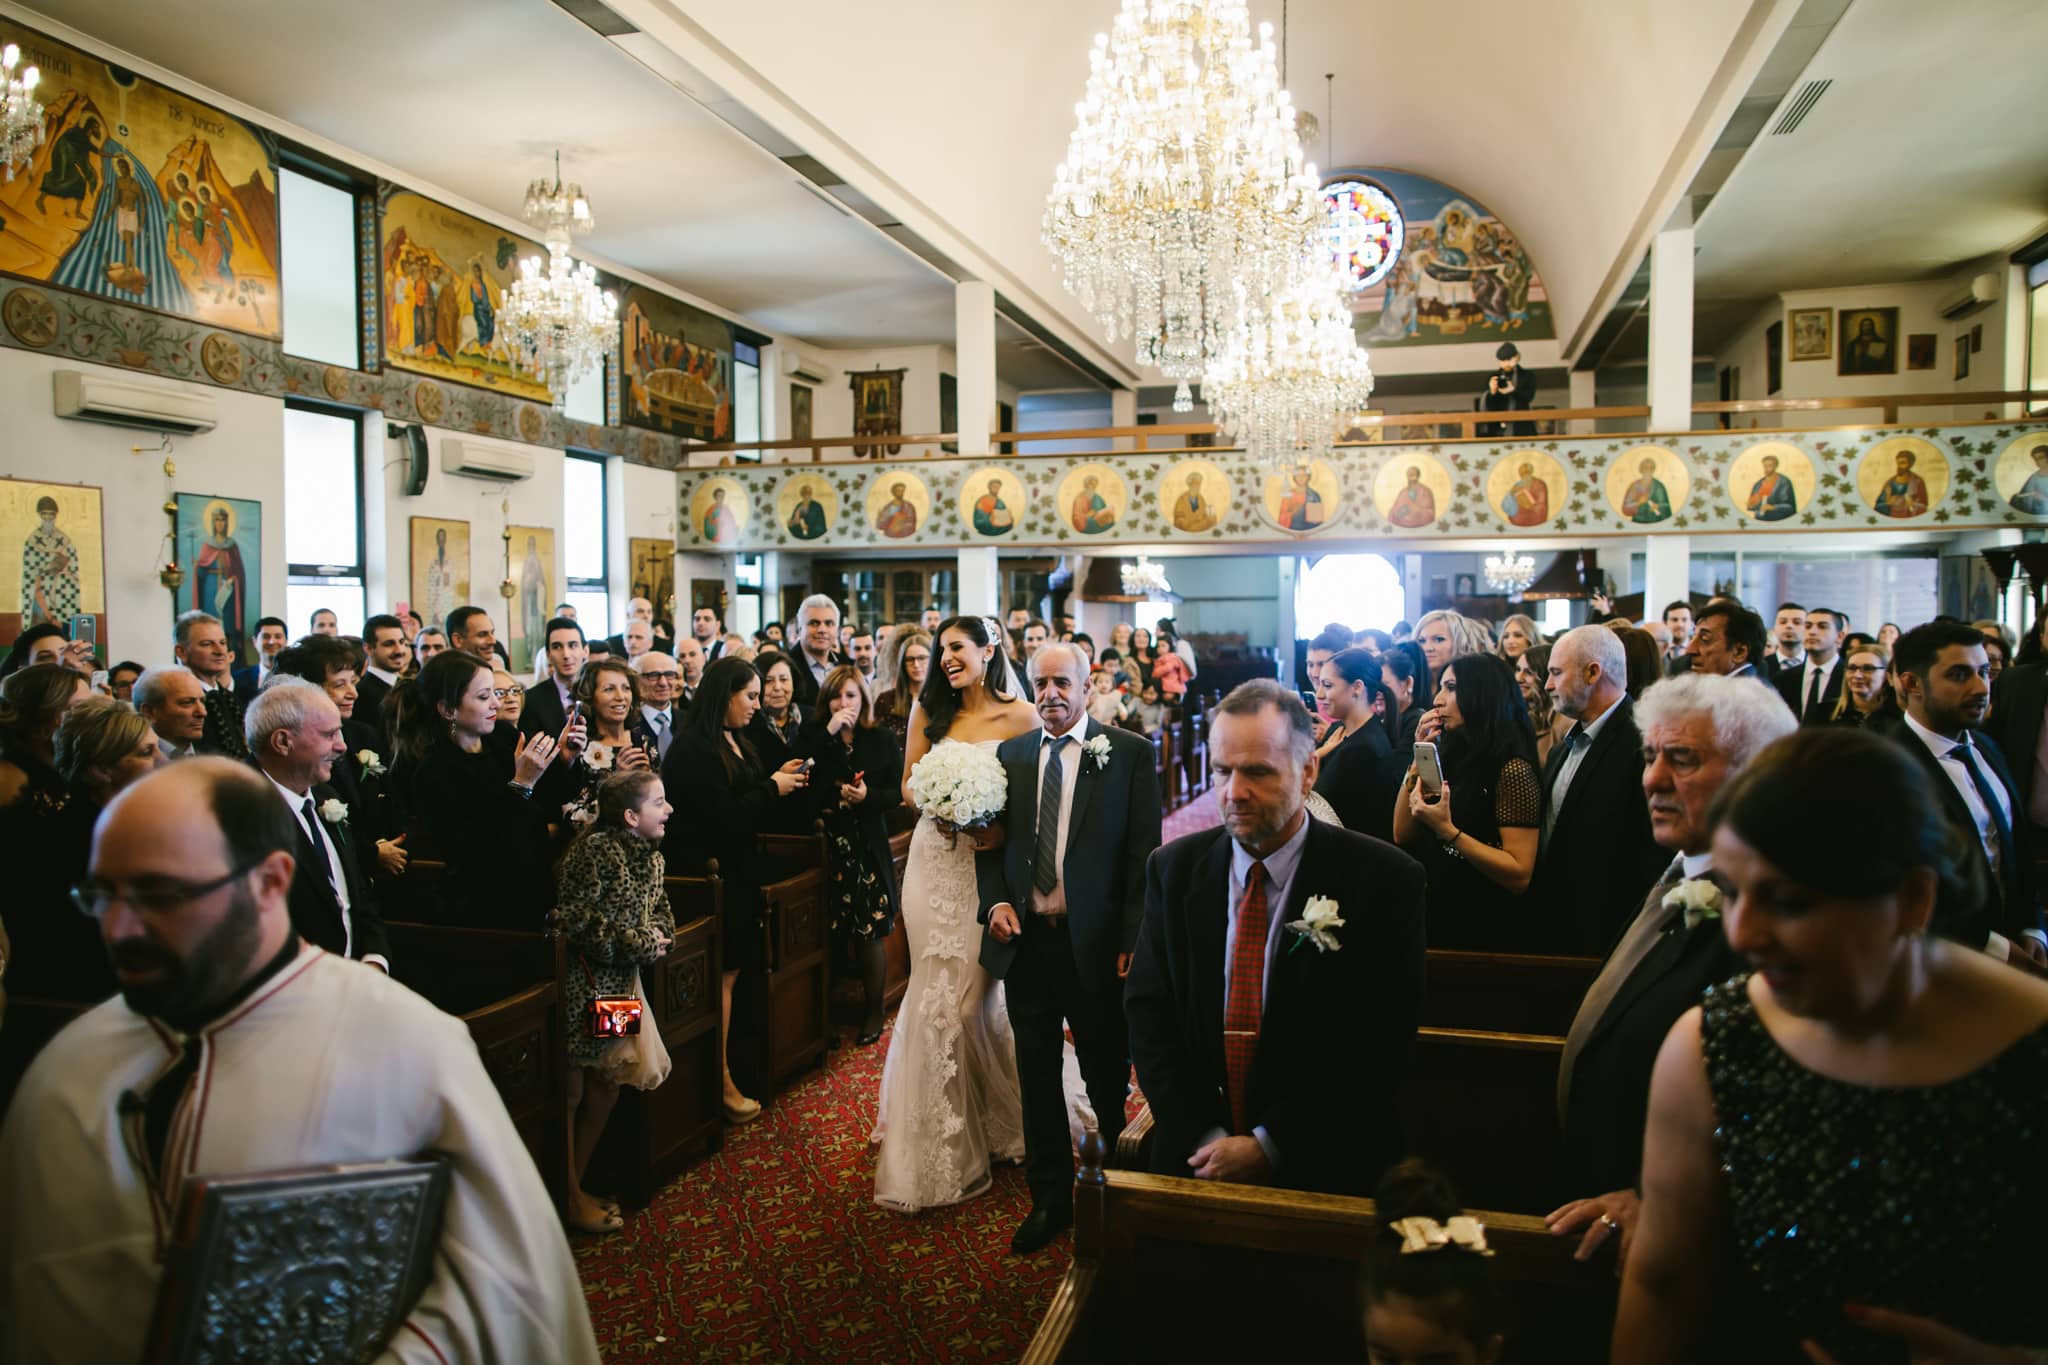 dad walking the bride down the aisle at a grek wedding in melbourne - best greek wedding photographer - large scale weddings